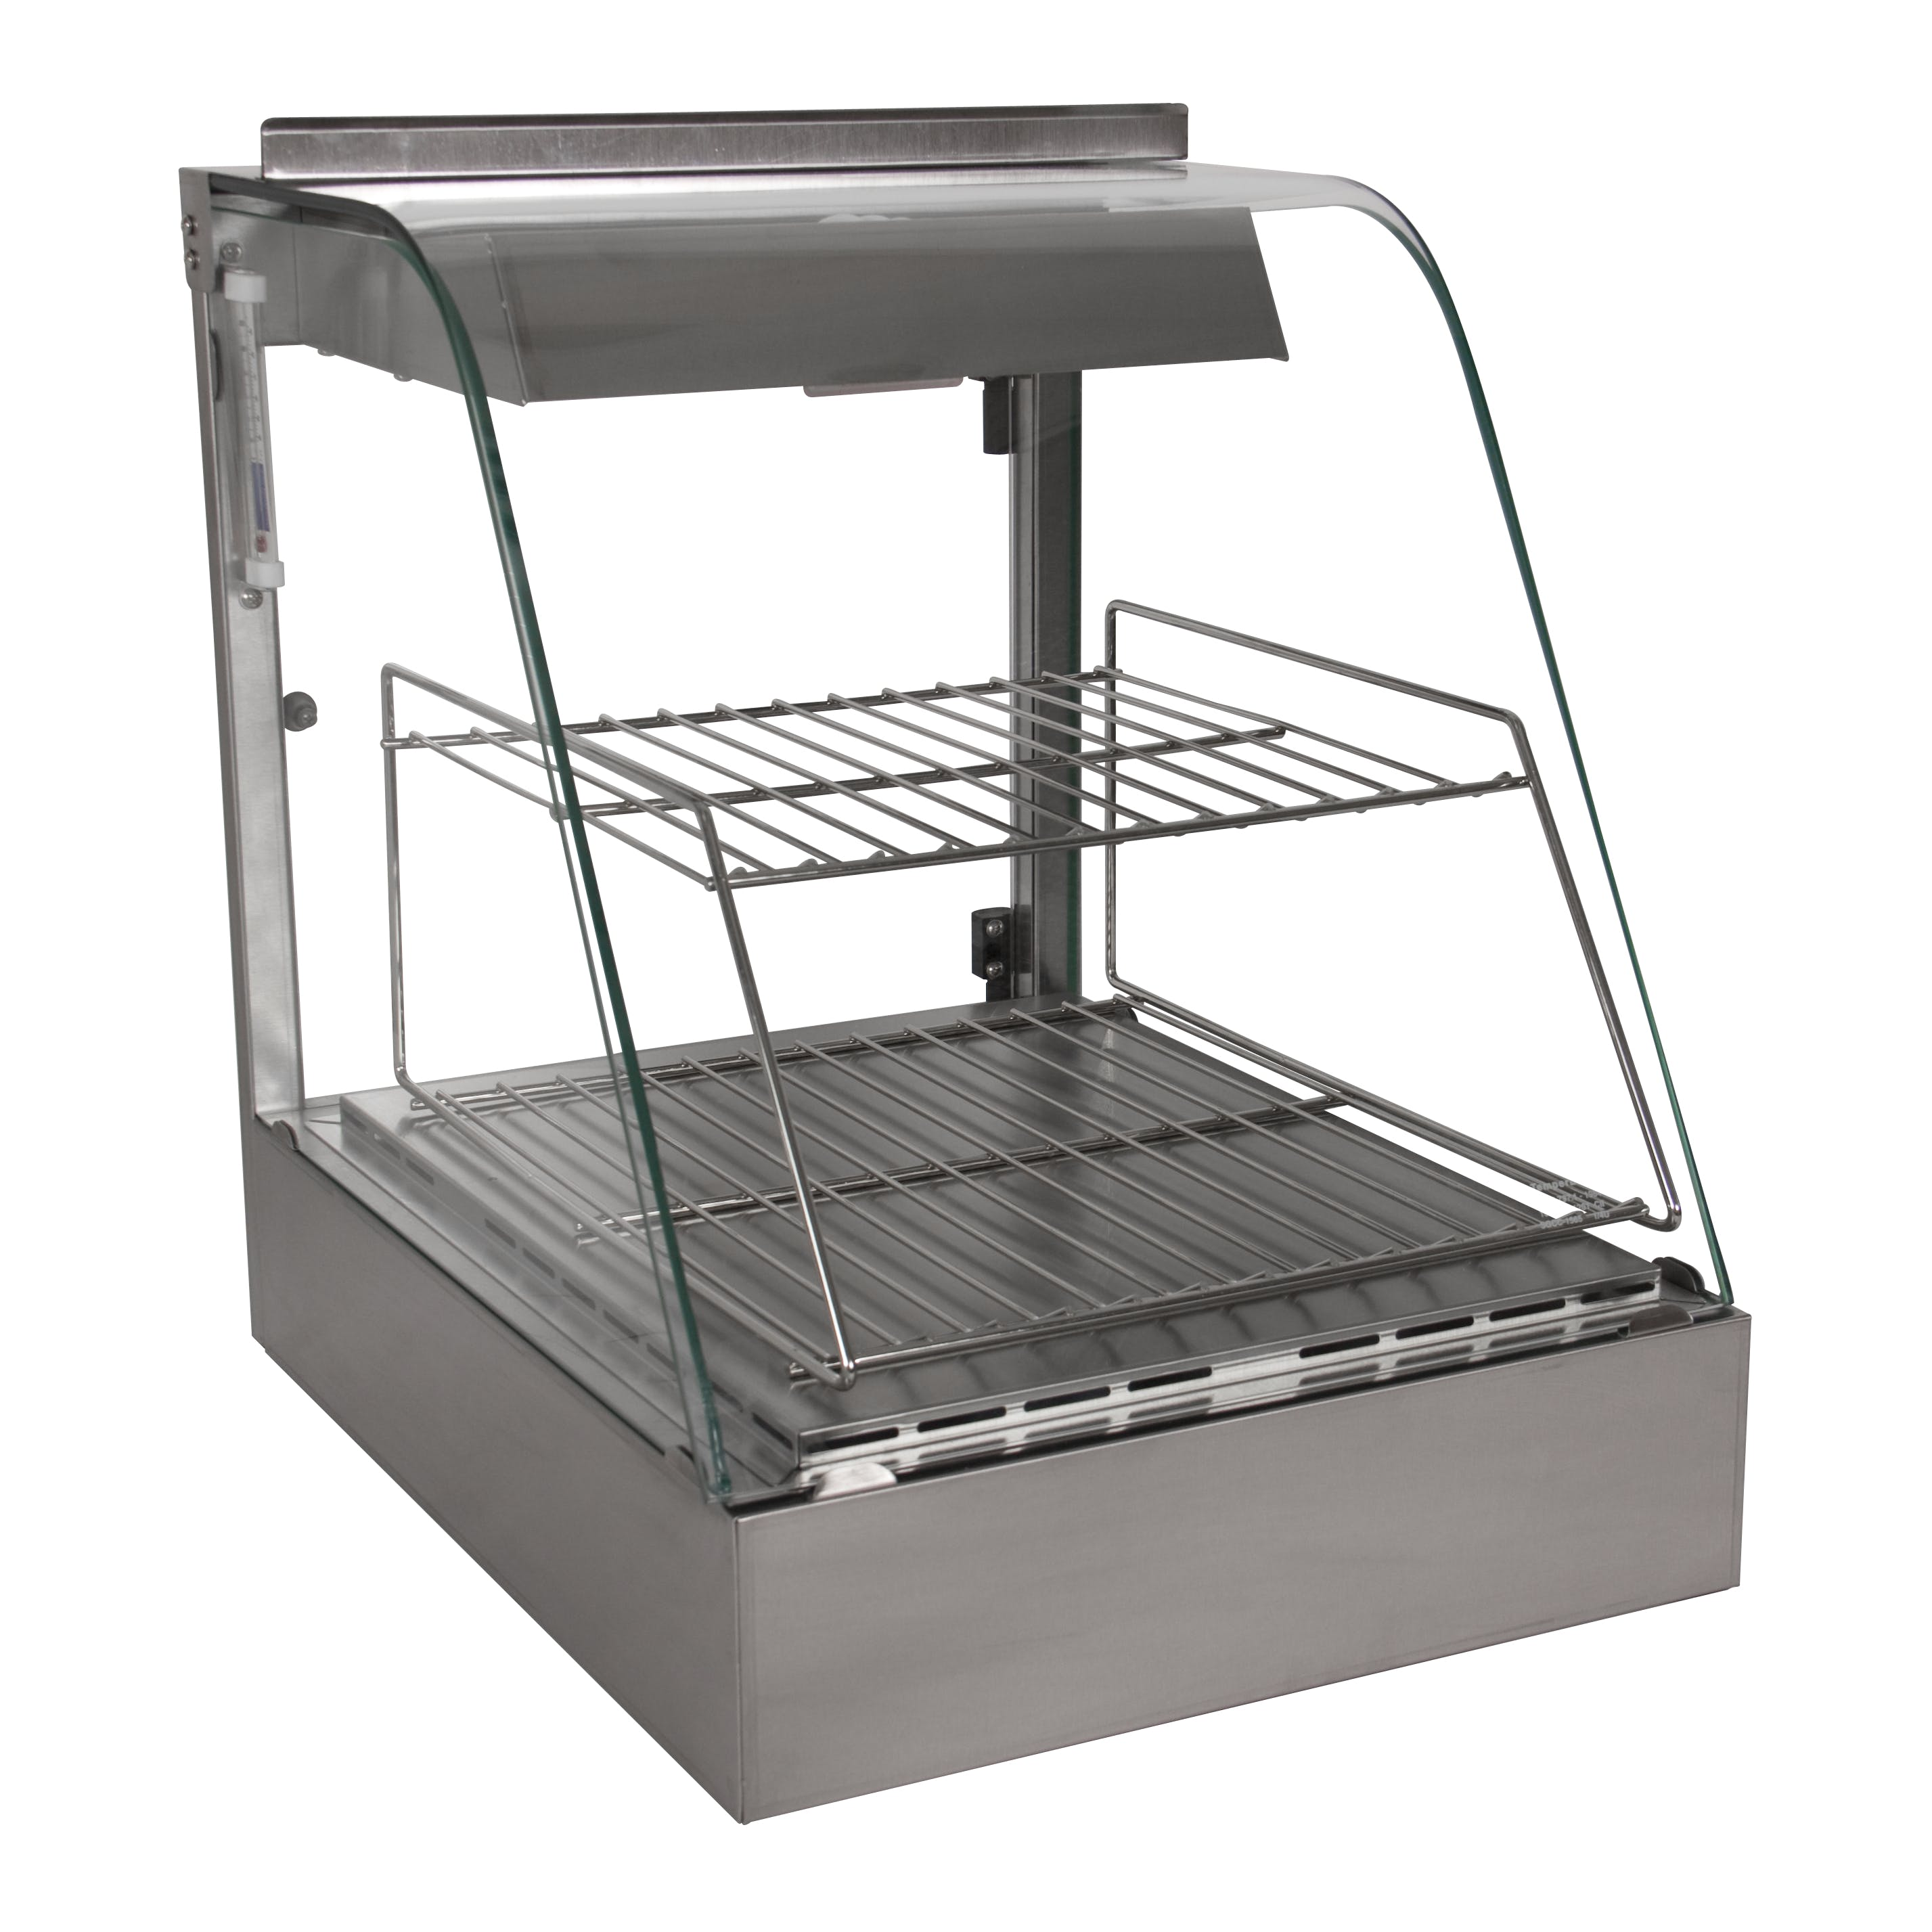 Wisco 323HH Warmer/Merchandiser Food warmer sold by pizzaovens.com